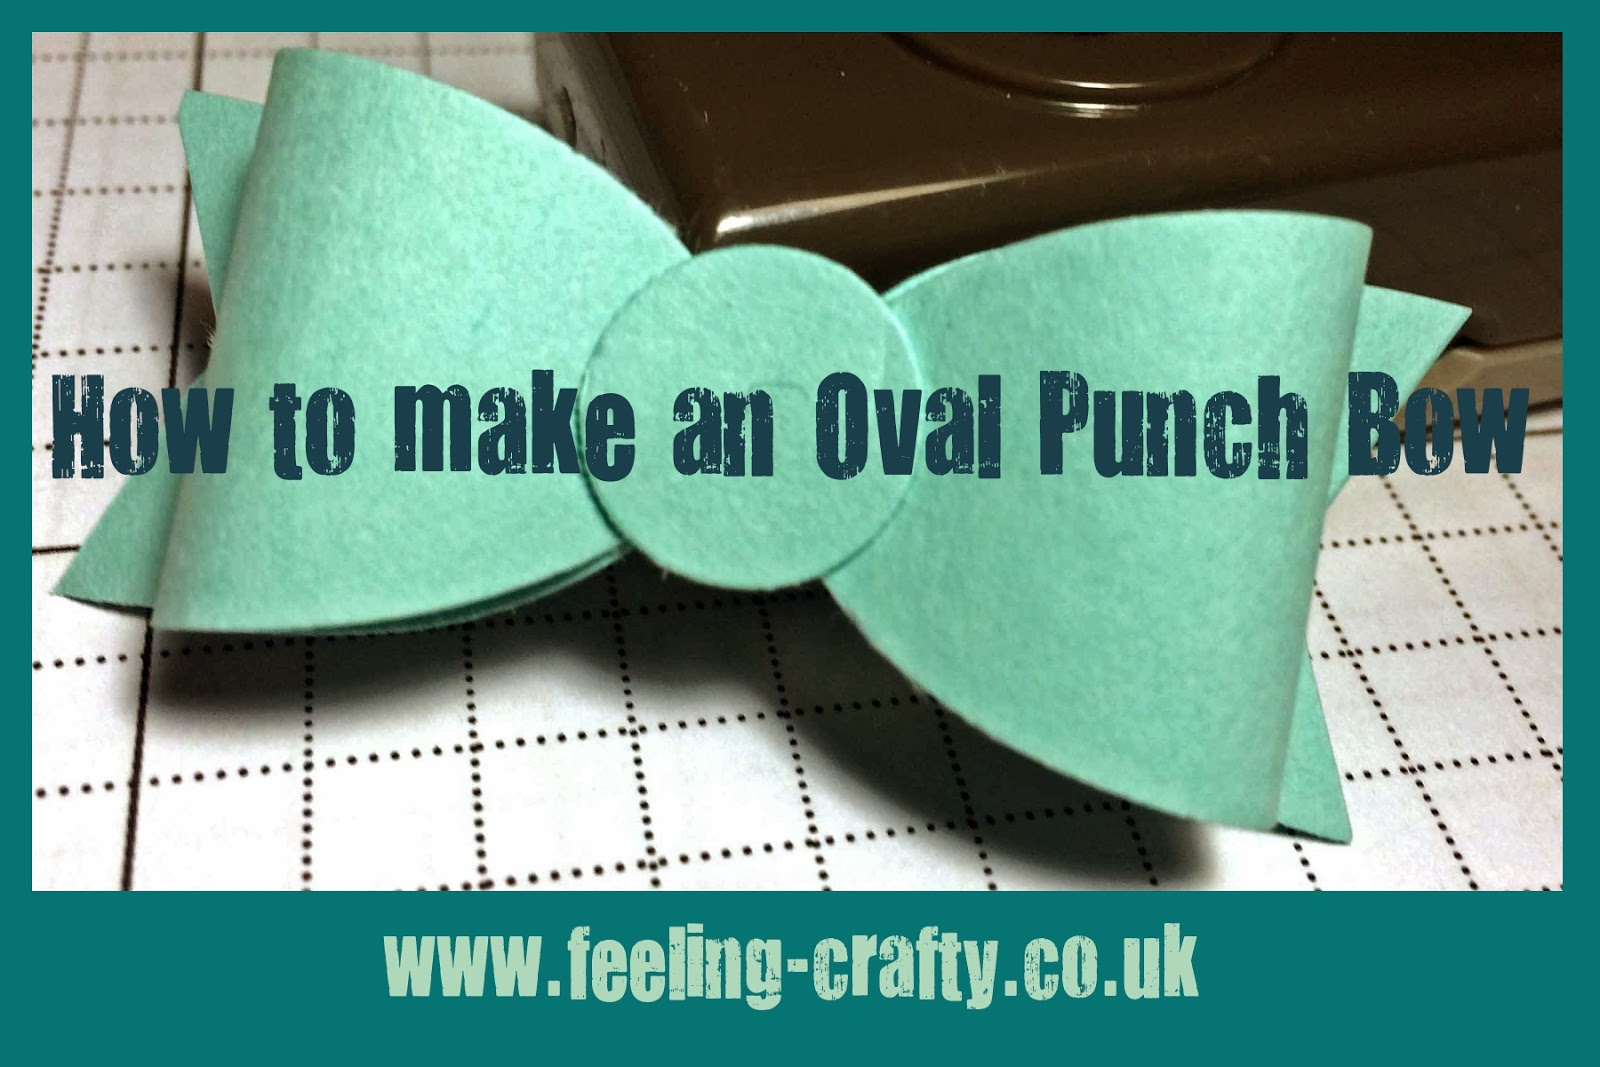 How to make a bow with an oval punch - check out this tutorial